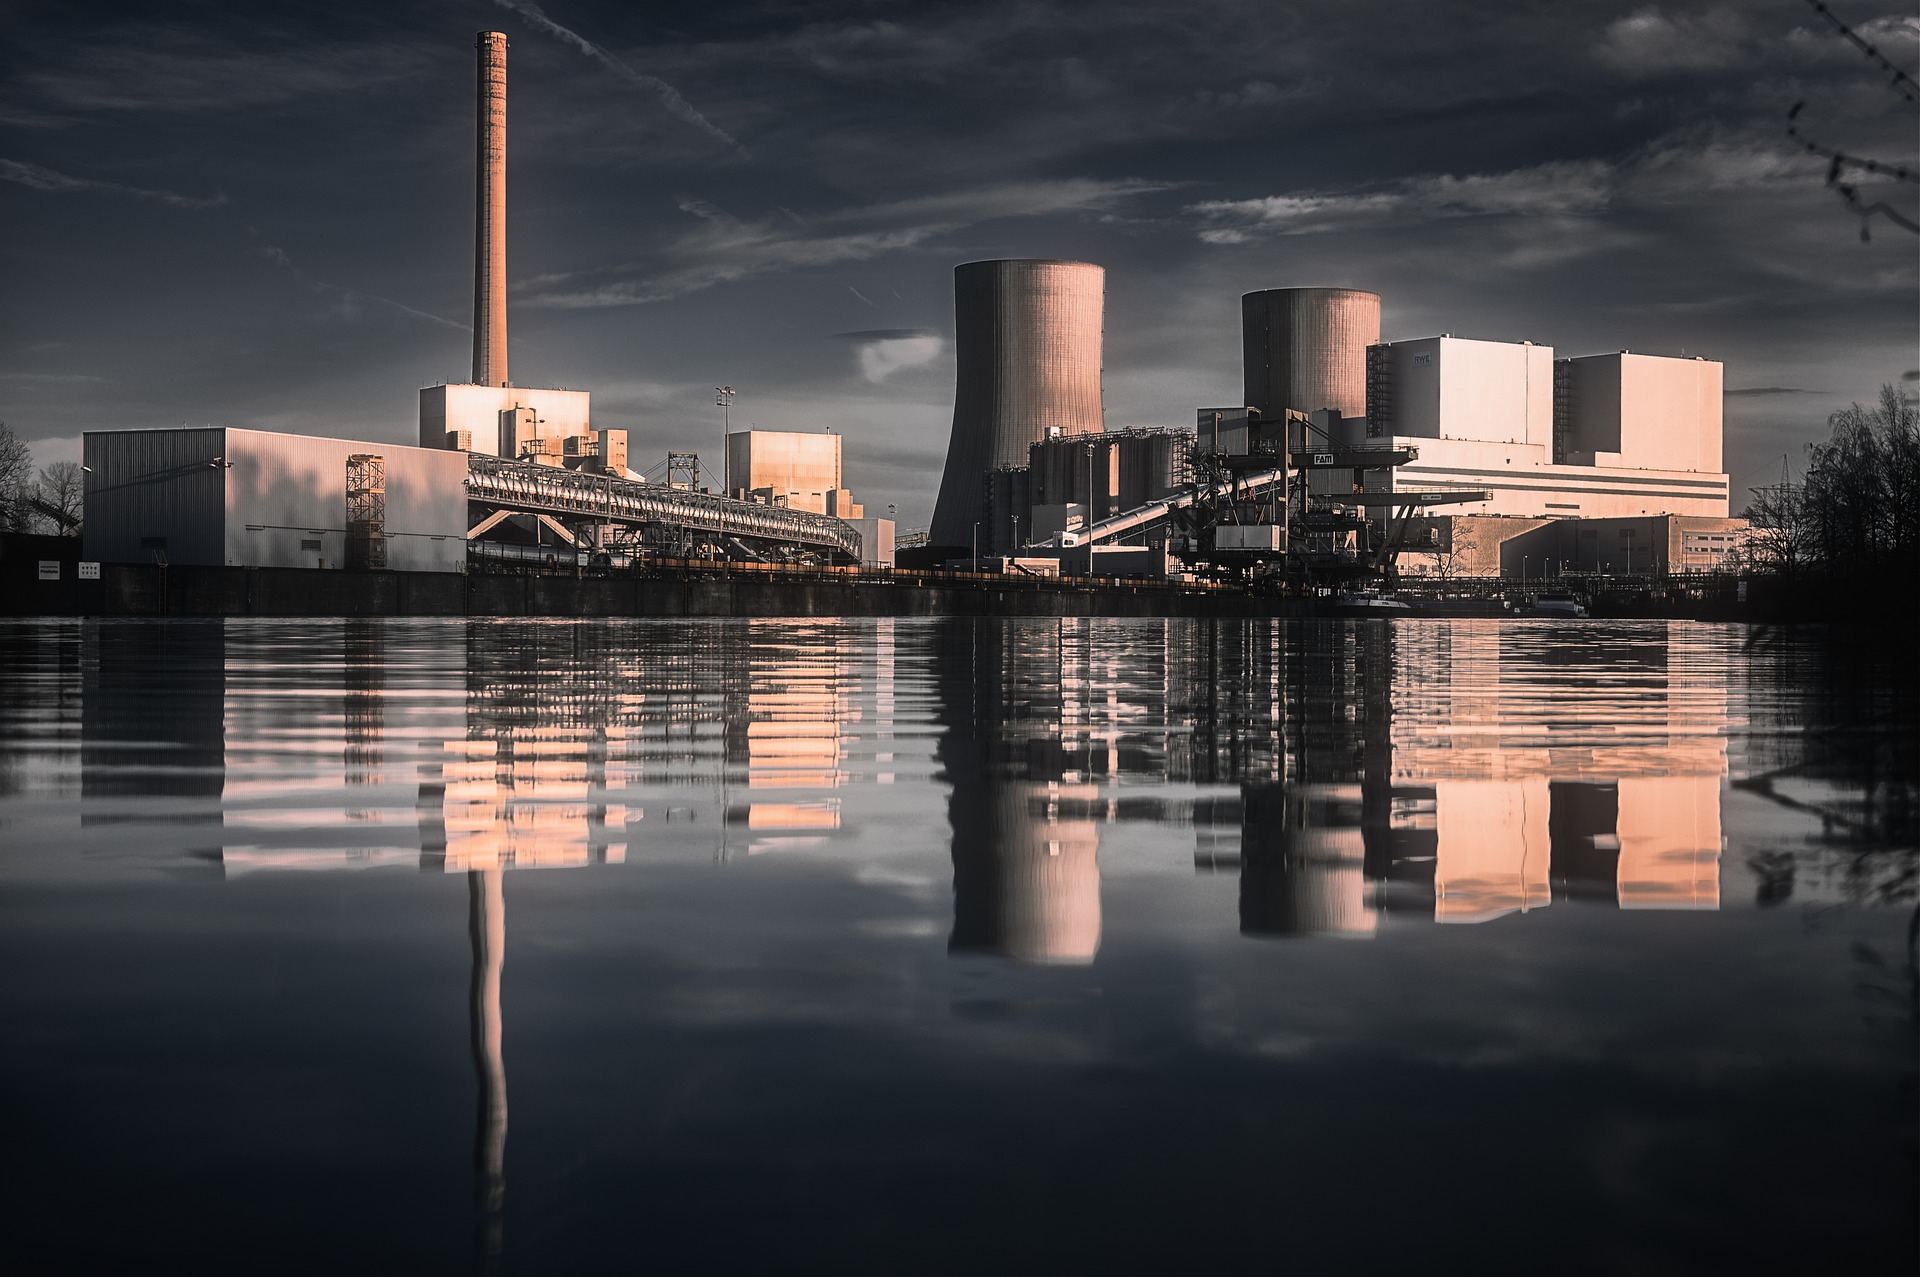 ais_industry_image